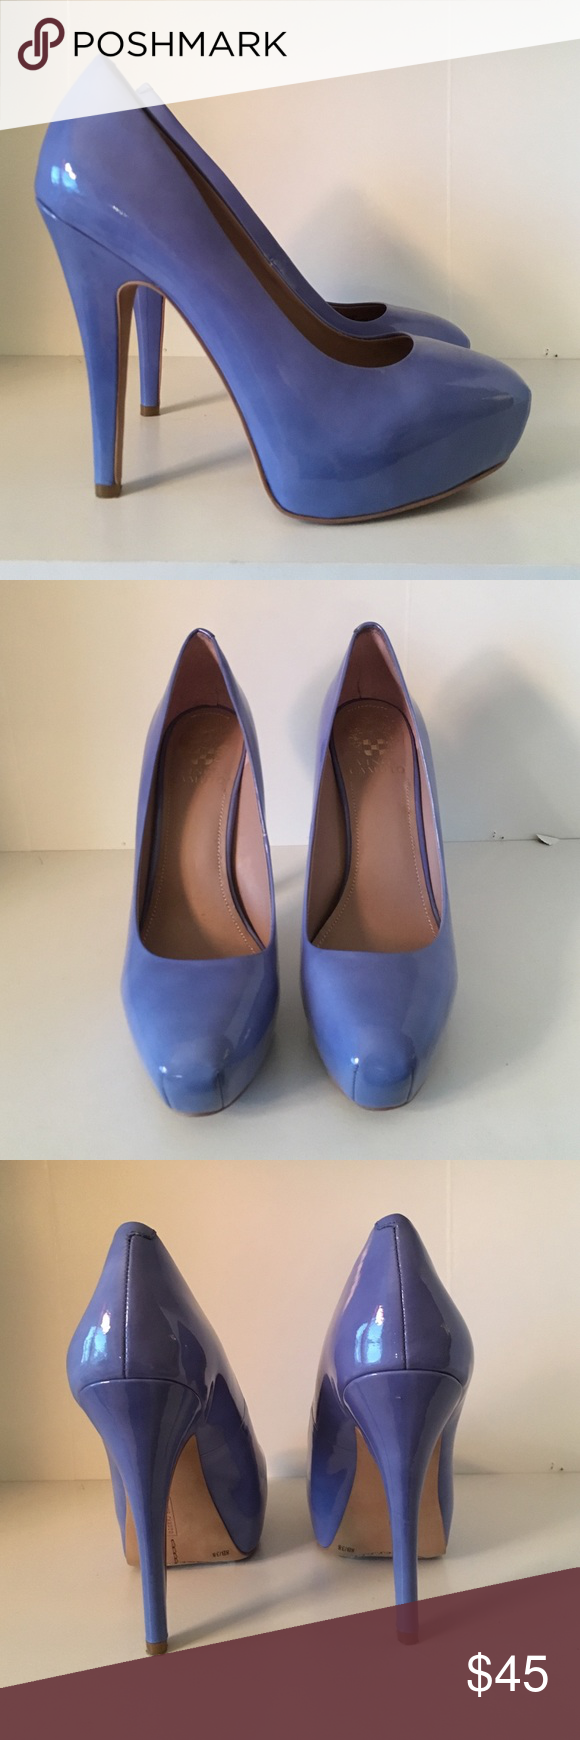 BRAND NEW Vince Camuto heels! I am so in love with these heels but I simply haven't found anything to wear them with for over a year! Never worn before, perfect condition, true to size! Patten leather material! Vince Camuto Shoes Heels